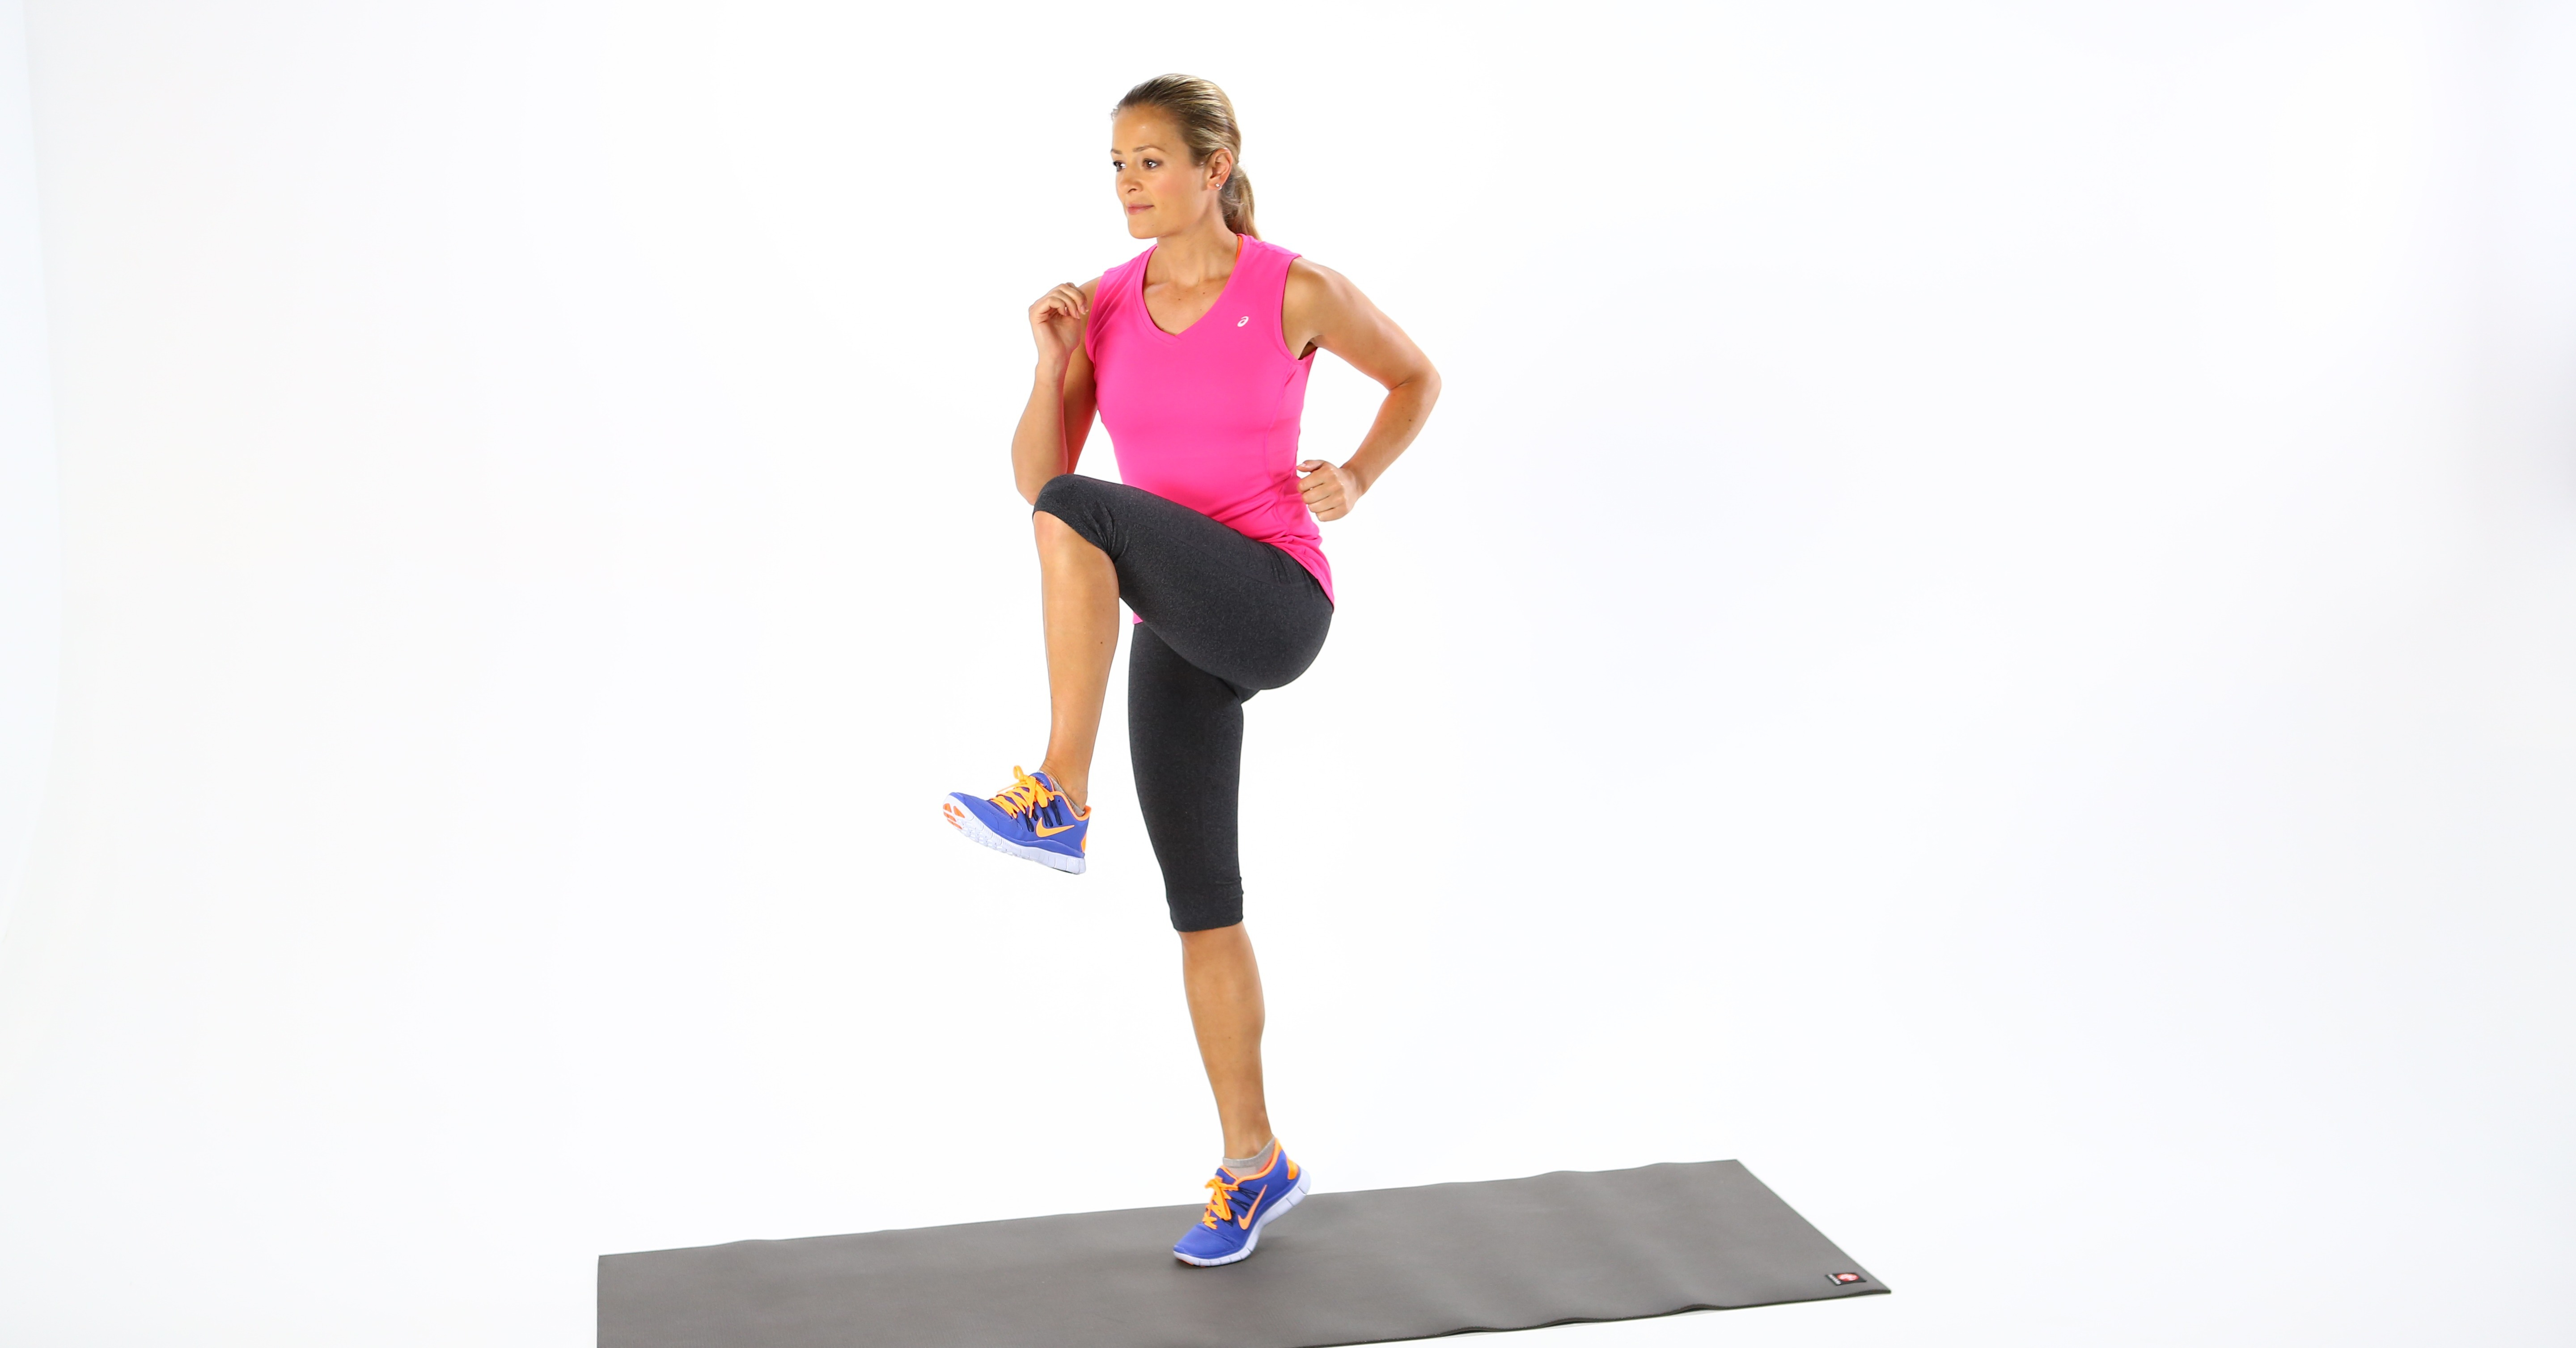 High Knees/Running in Place | This 7-Minute Workout Targets Belly Fat ...: www.popsugar.com/fitness/photo-gallery/30492060/image/30492593/High...